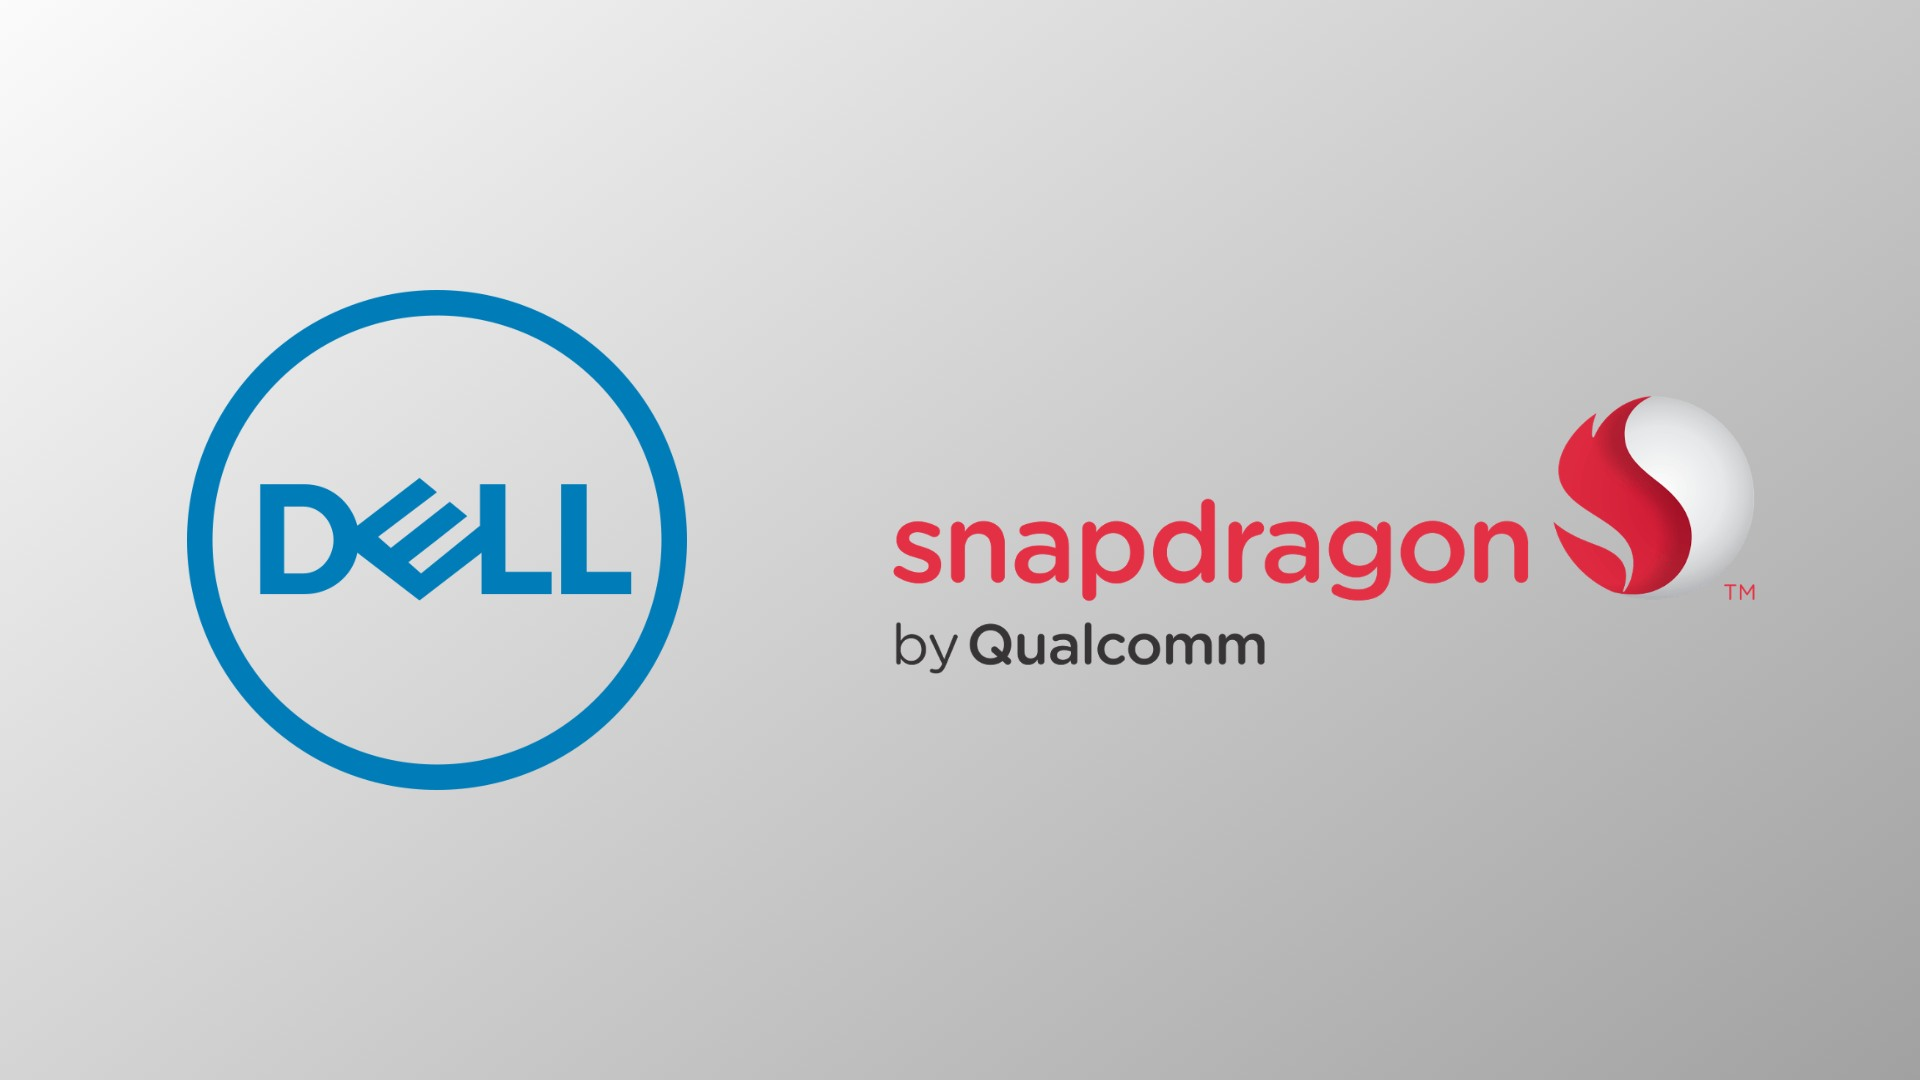 Dell is likely at work on a Snapdragon-powered Chromebook of its own